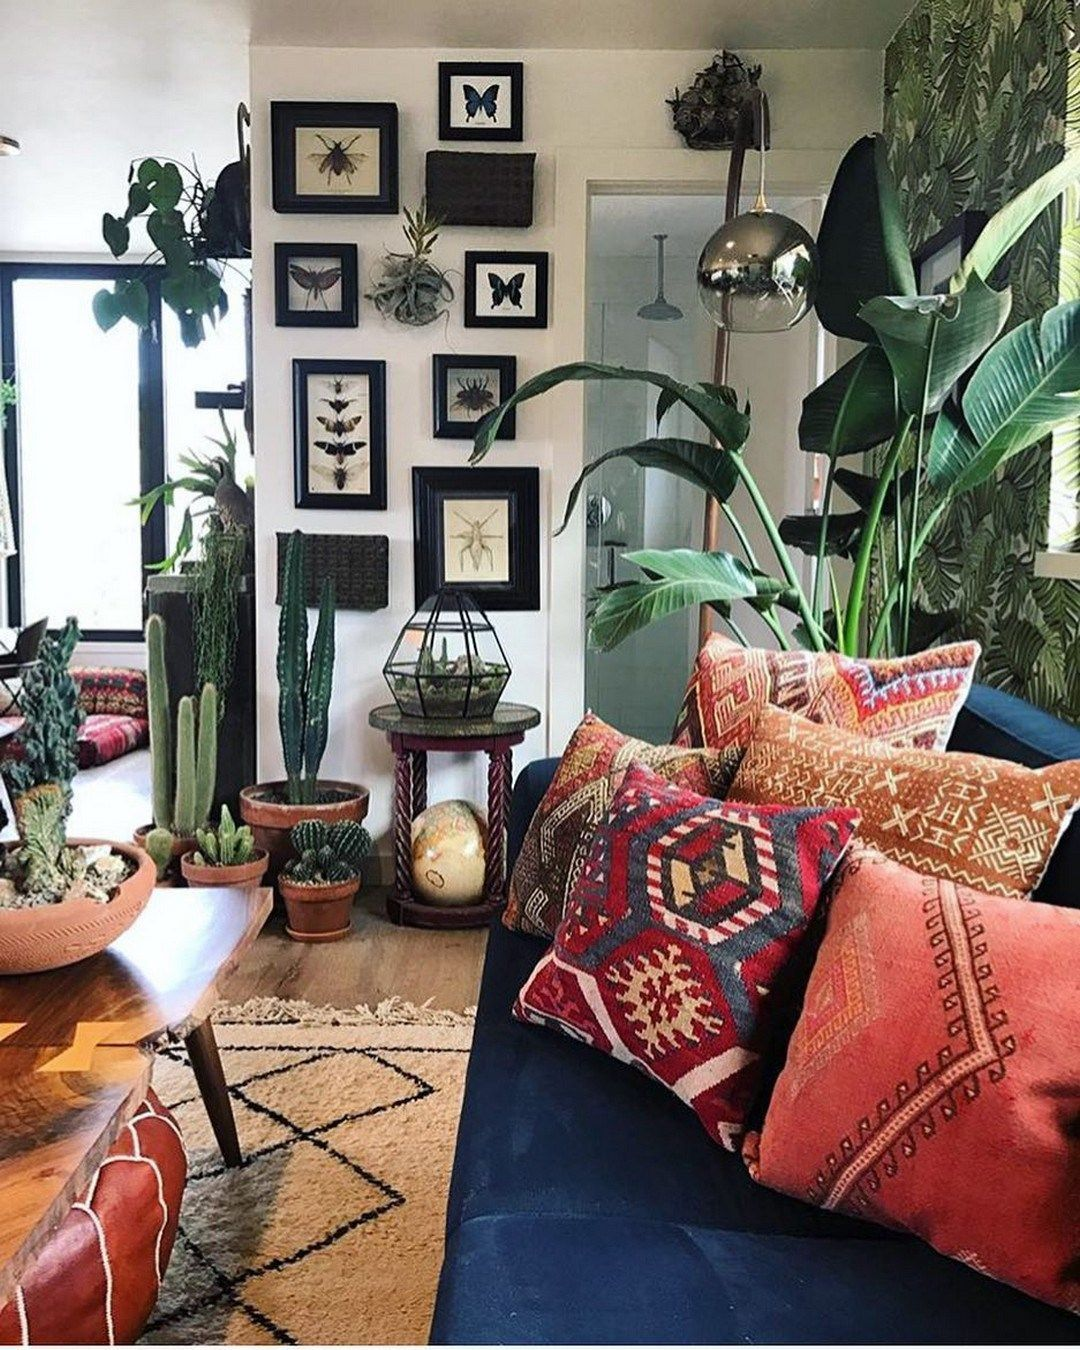 Rustic And Cozy Boho Cabin Makeover On A Budget (14 | Home ... on Boho Bedroom Ideas On A Budget  id=54230